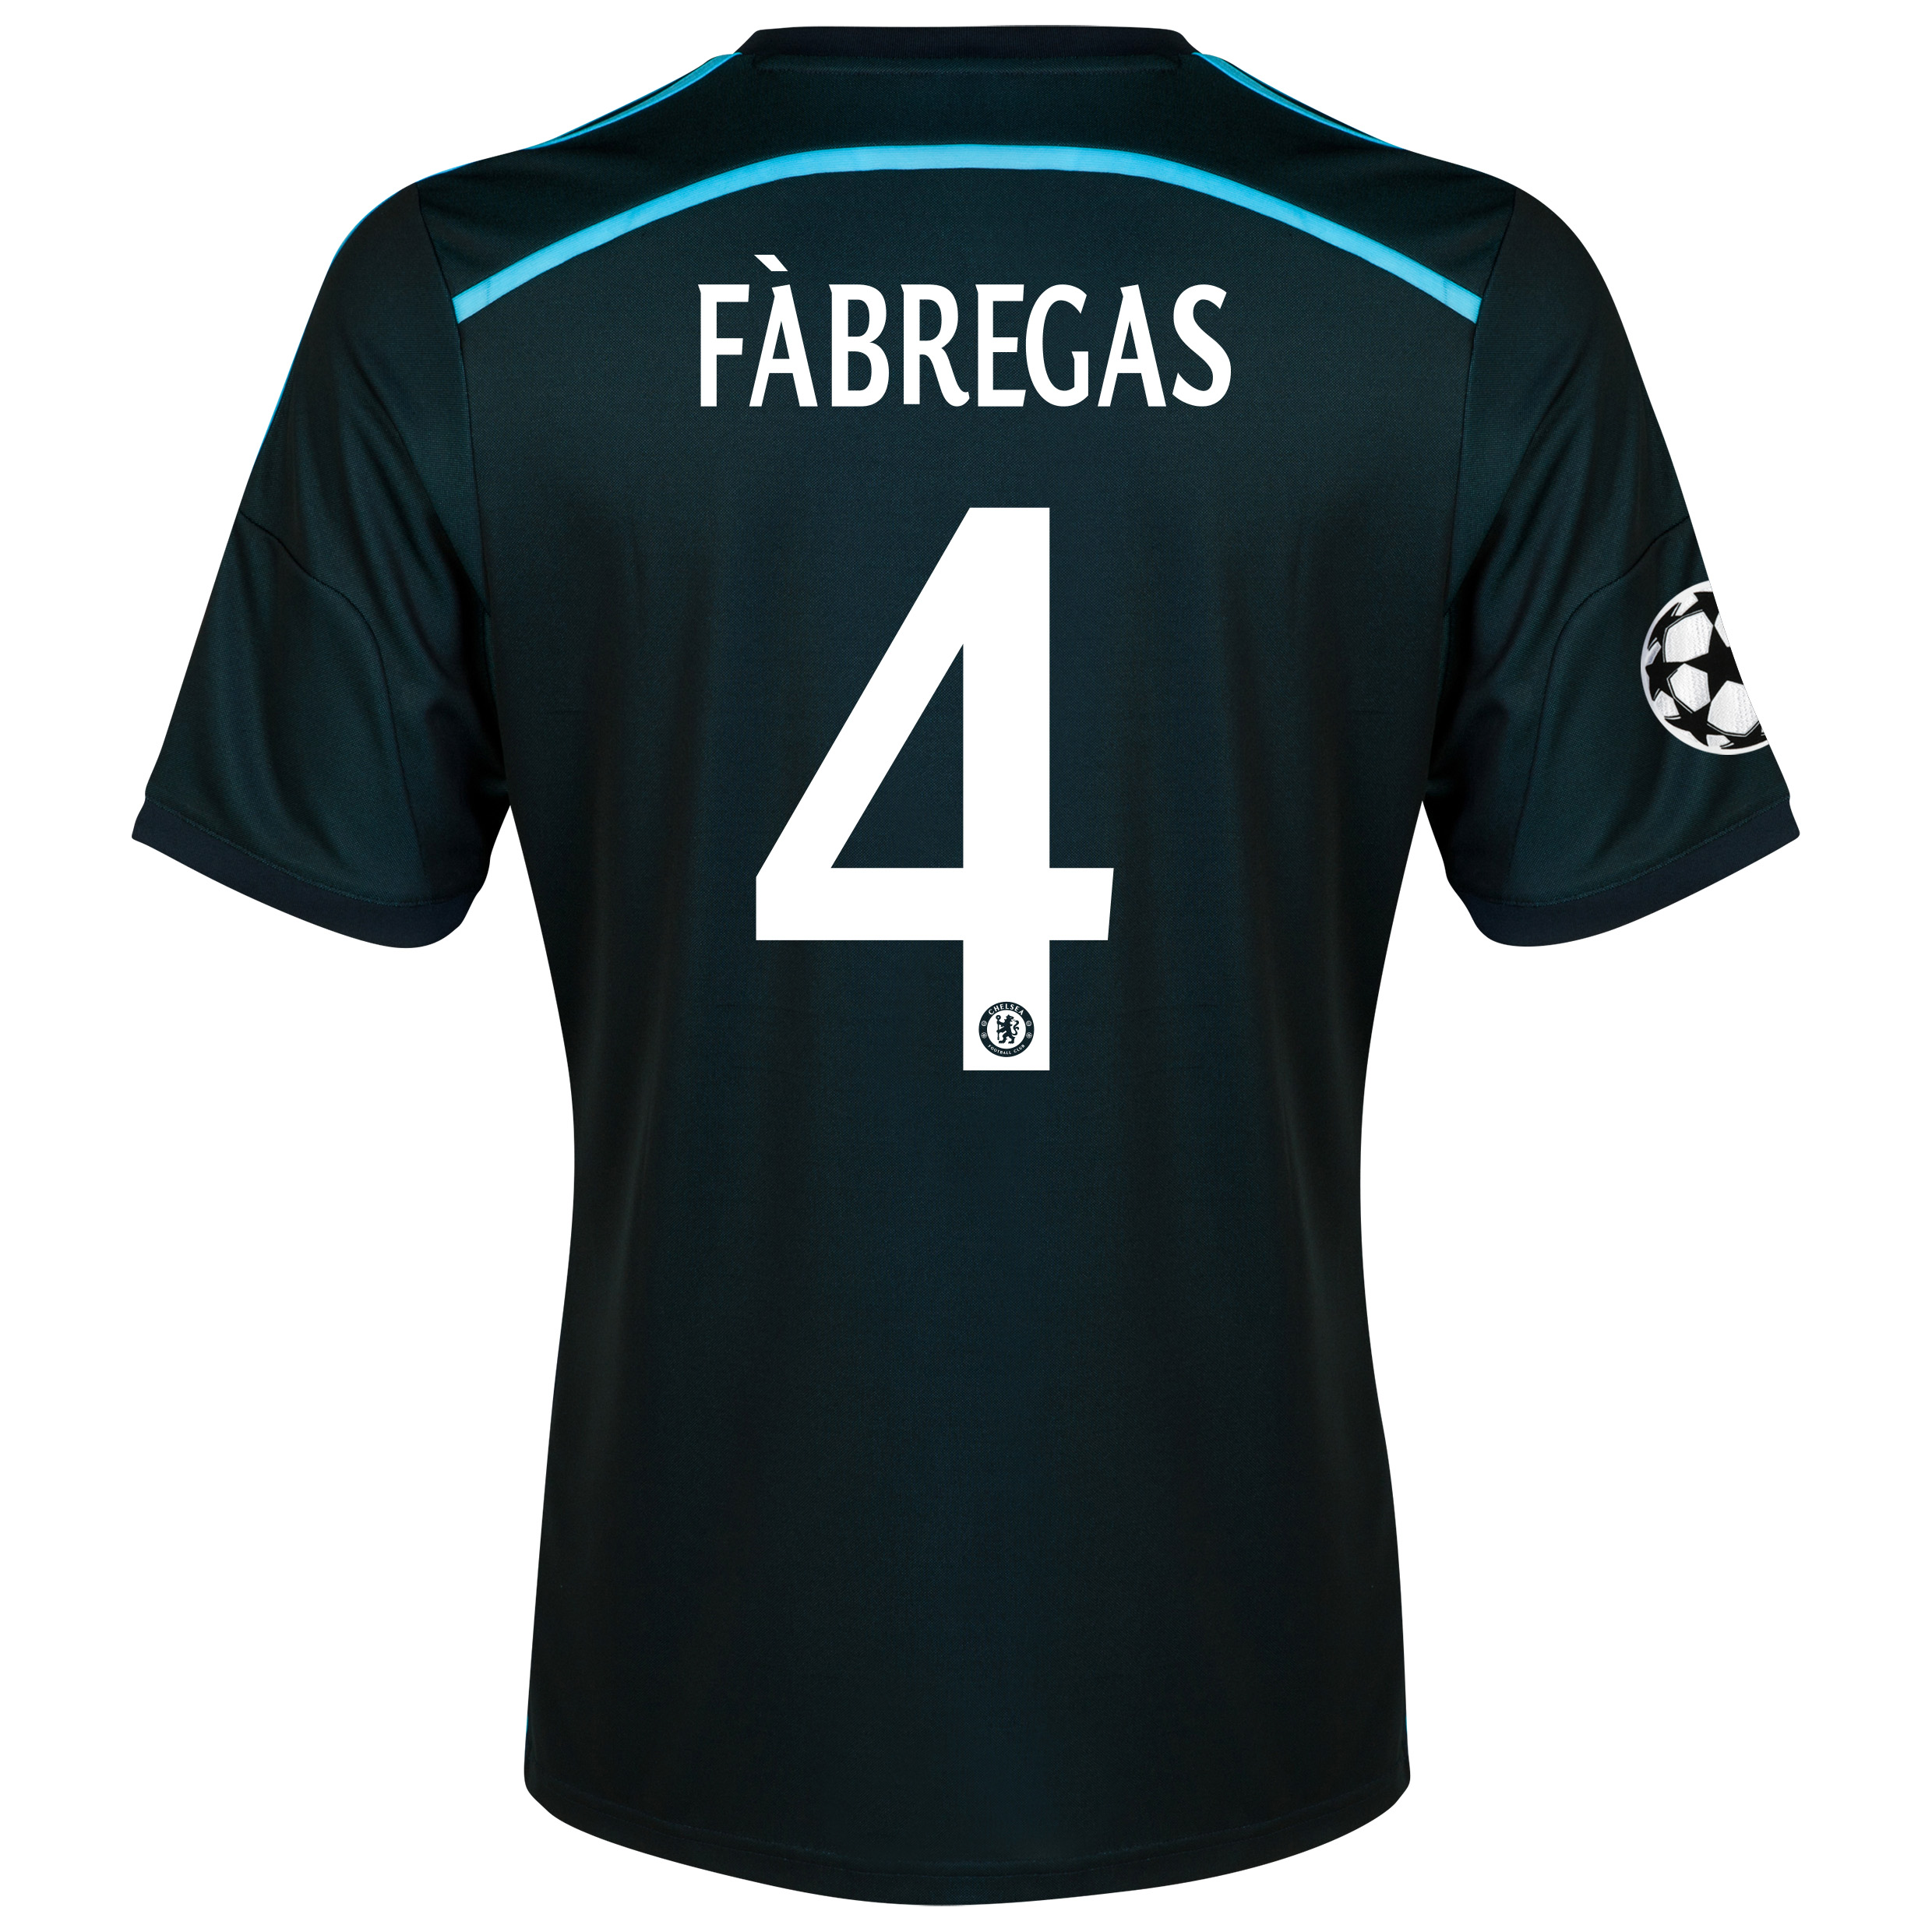 Chelsea UEFA Champions League Third Shirt 2014/15 with Fàbregas 4 printing